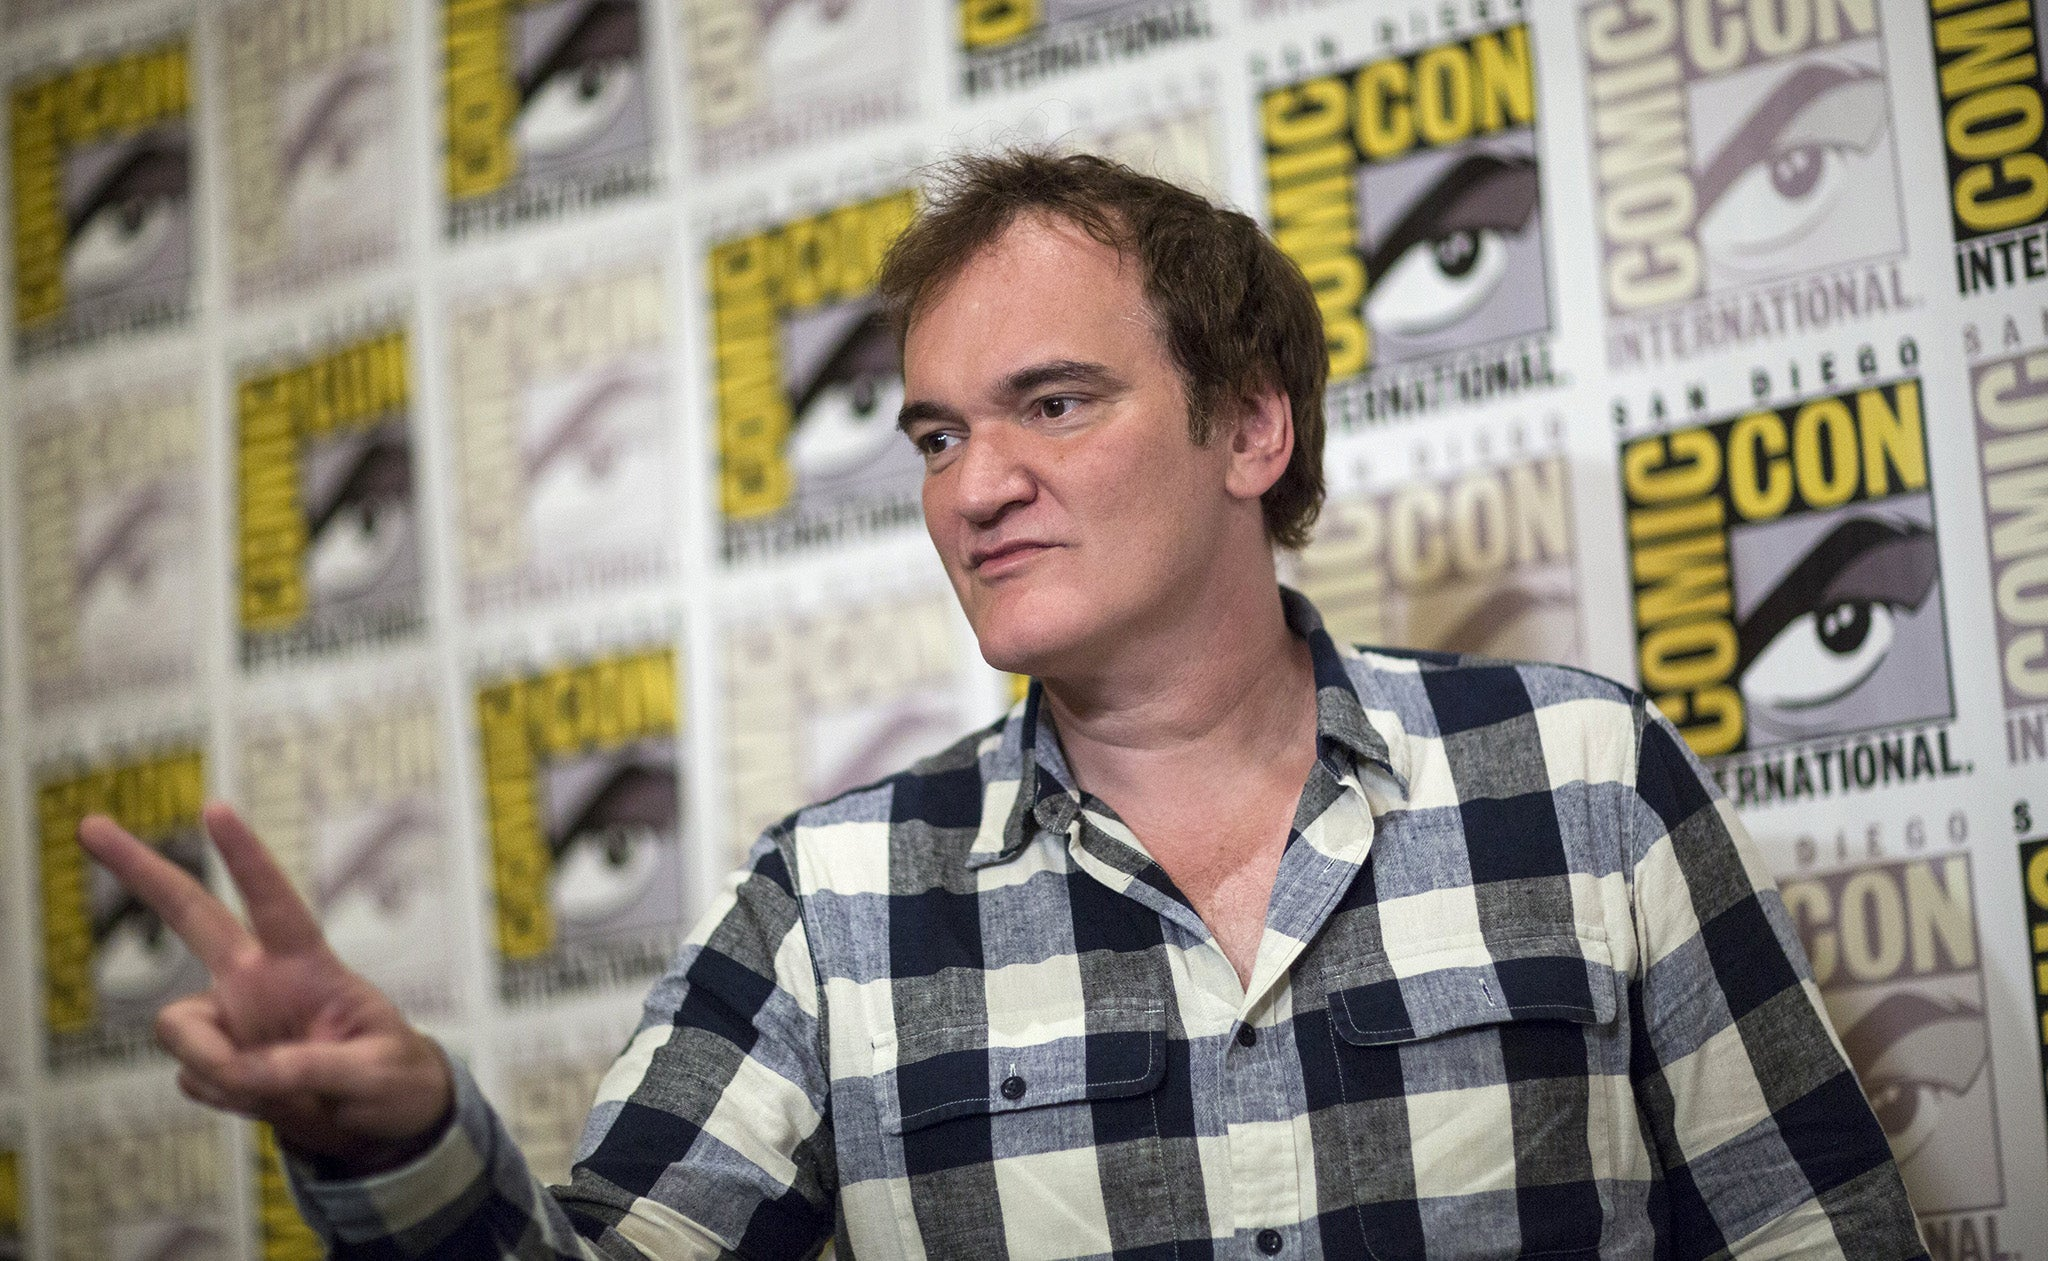 Comic Con 2015: Quentin Tarantino signals move into television with plans for 'three miniseries'